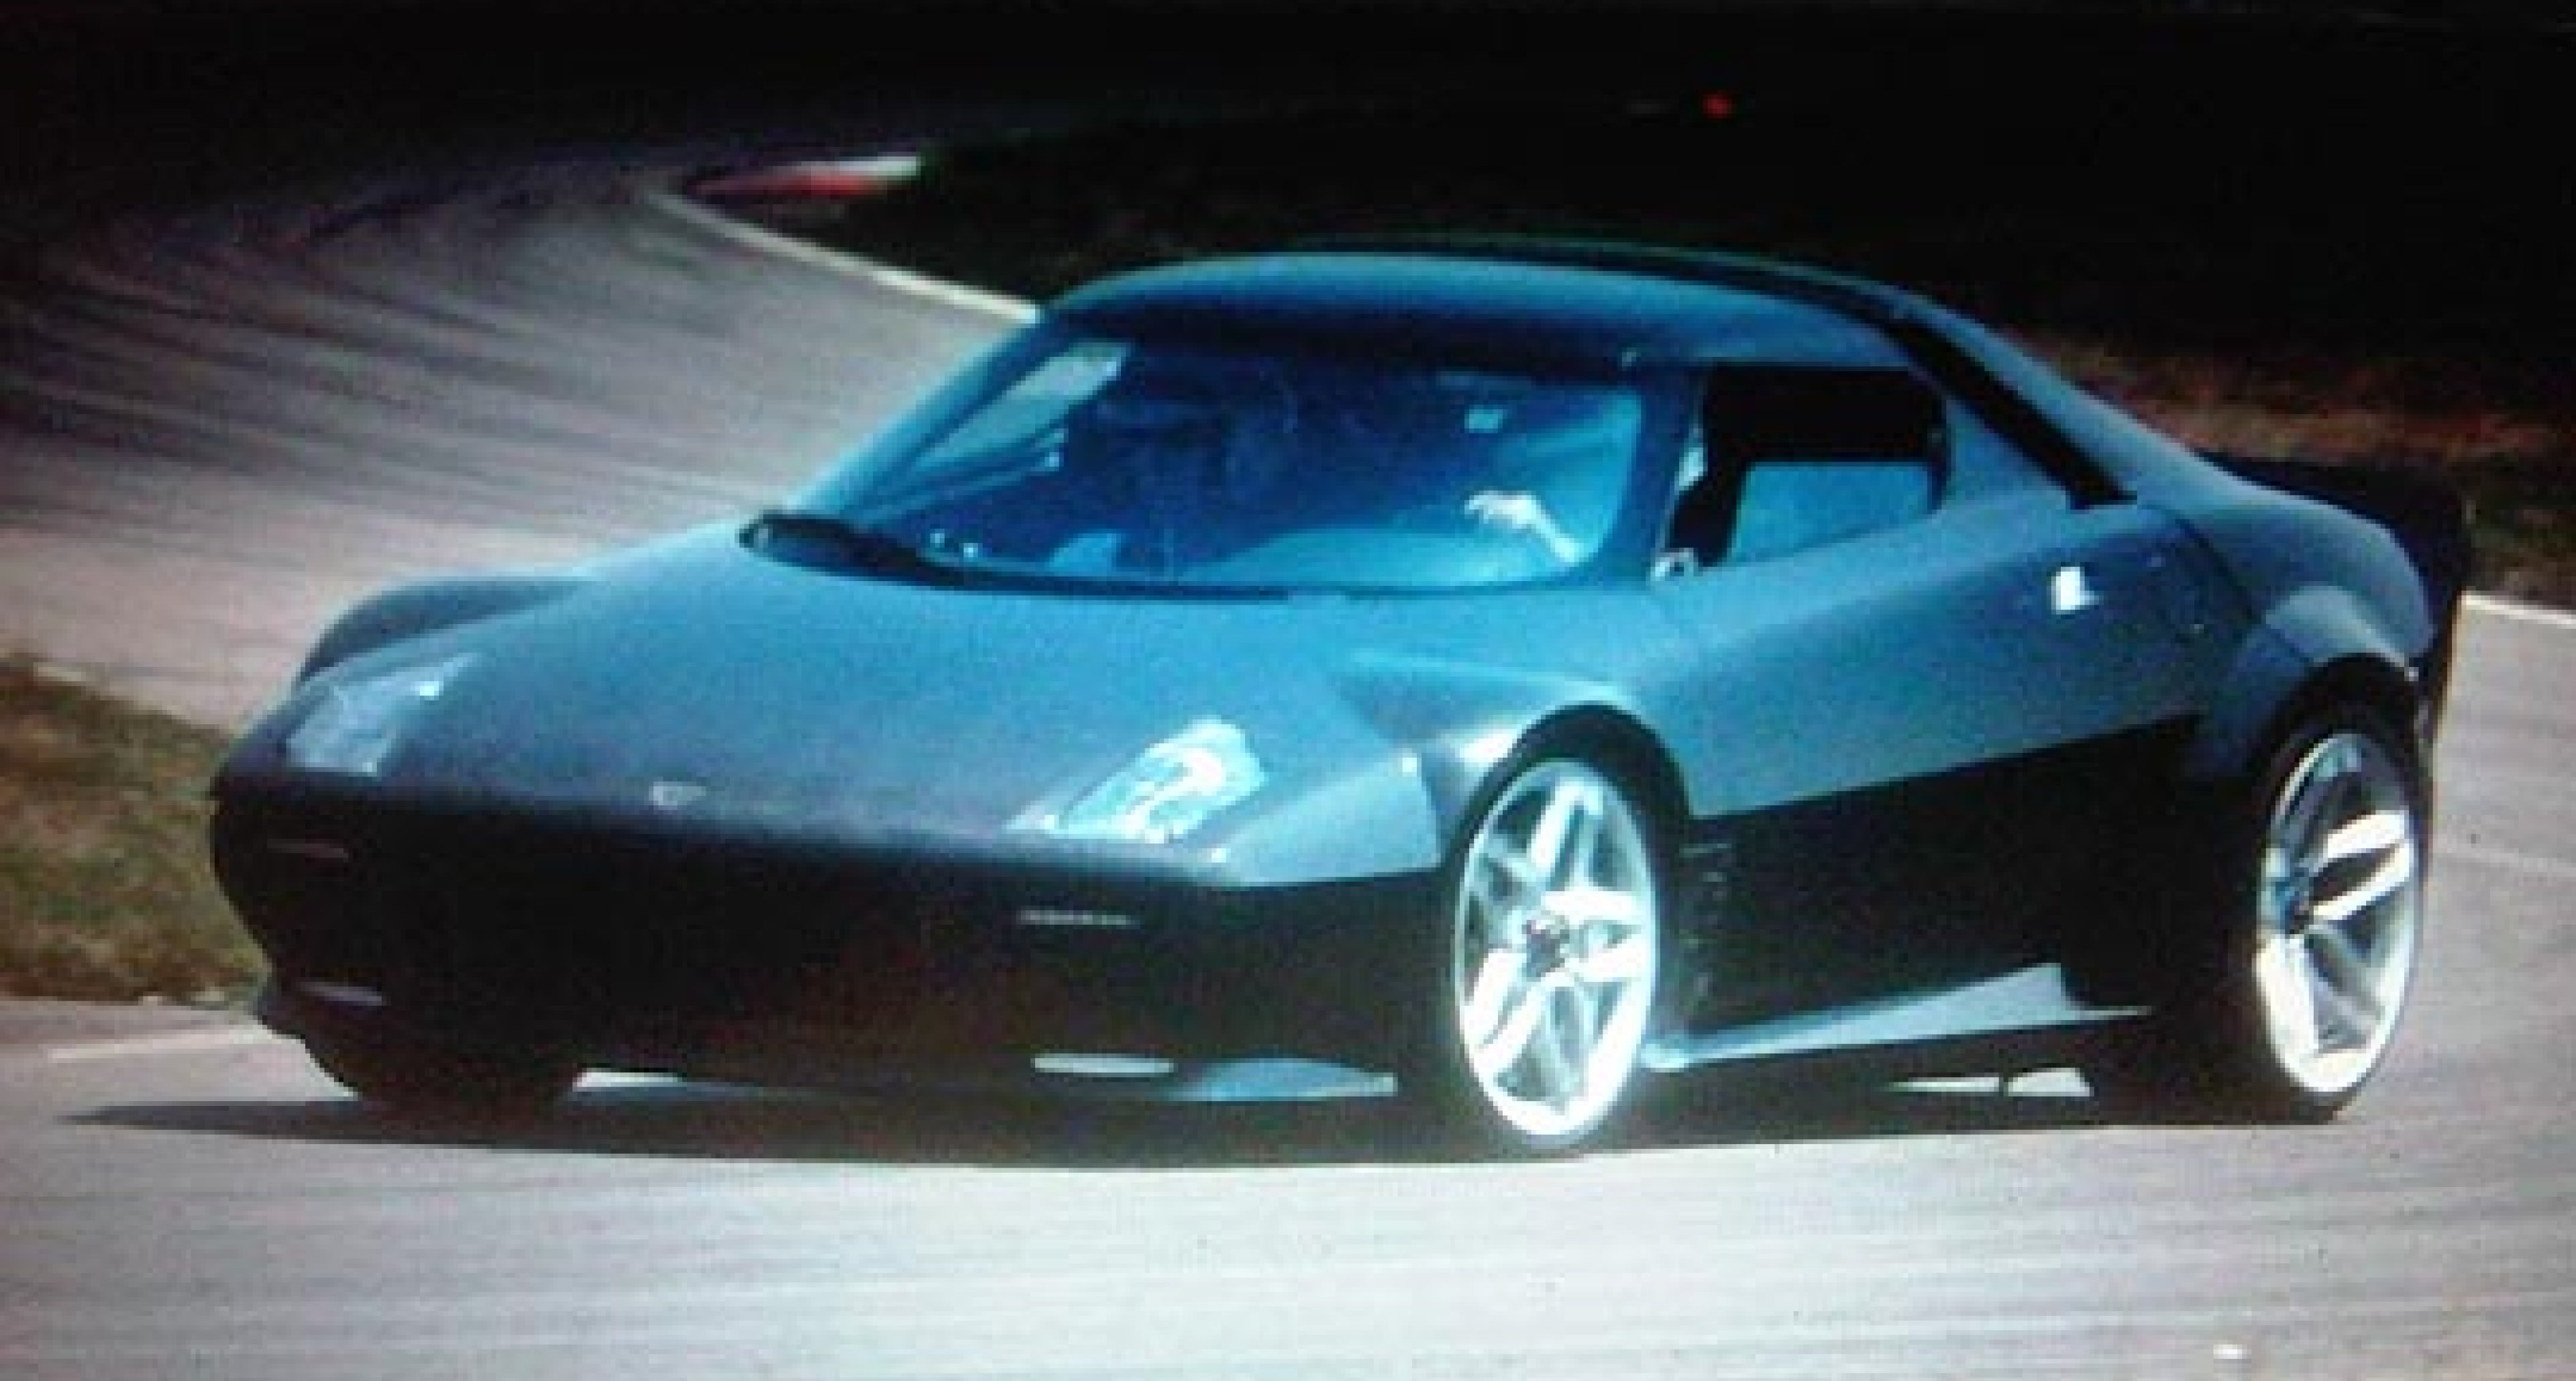 New Stratos? Spy Shots Reveal Rebirth of an Icon